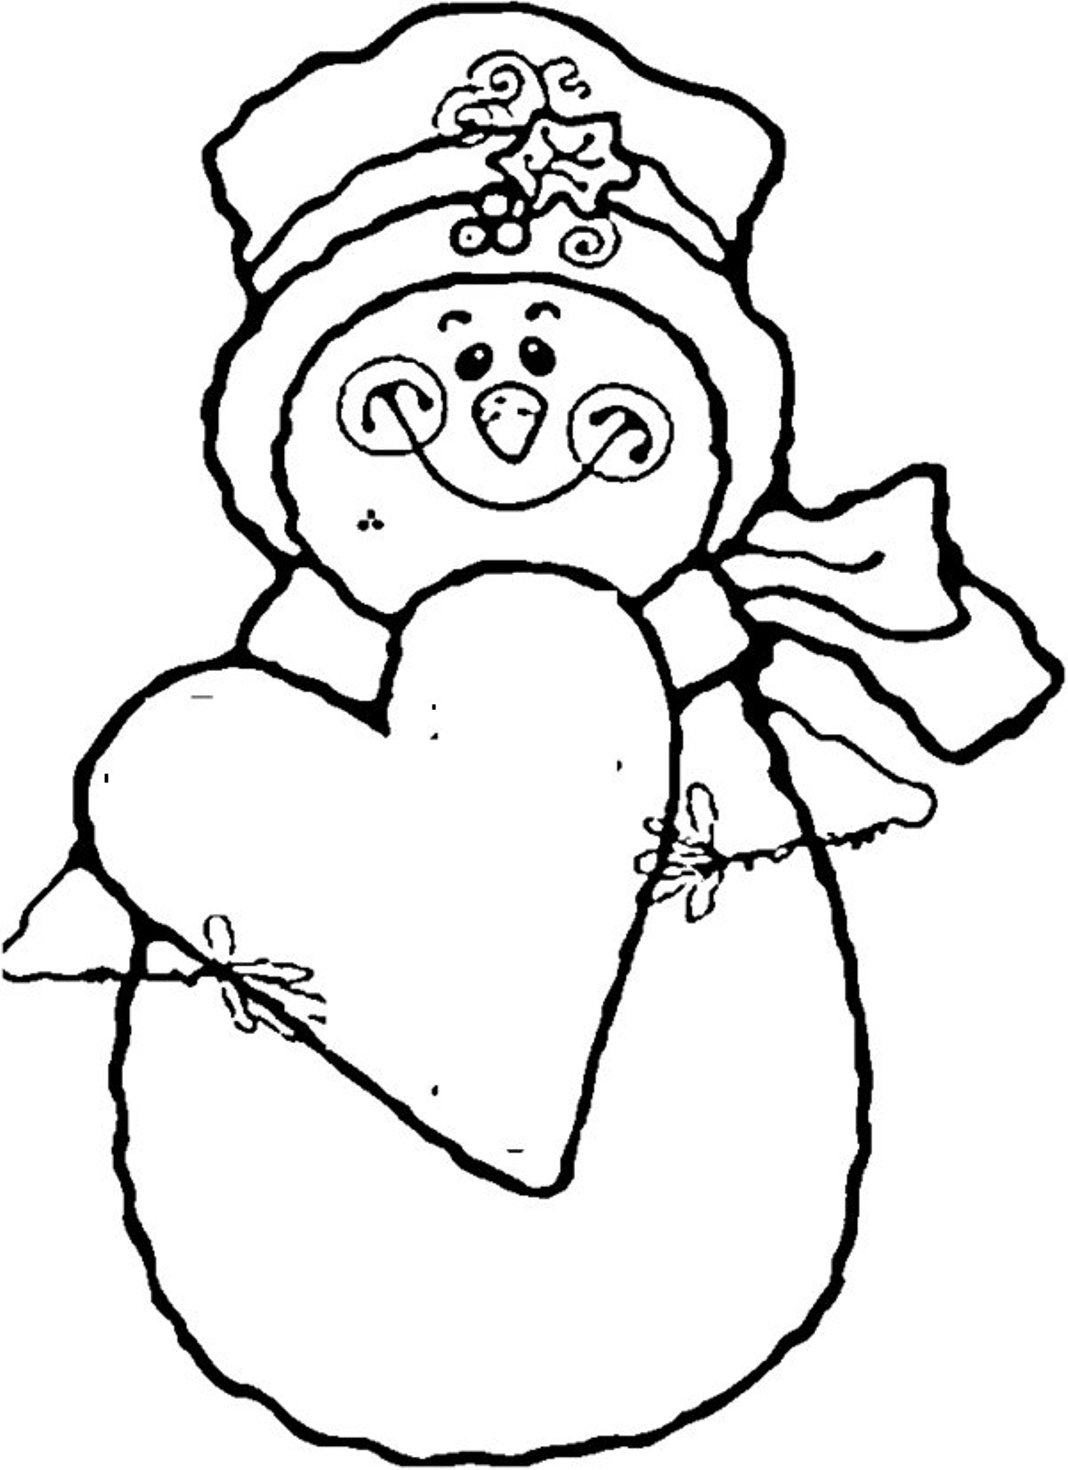 Dynamite image pertaining to snowman printable coloring page